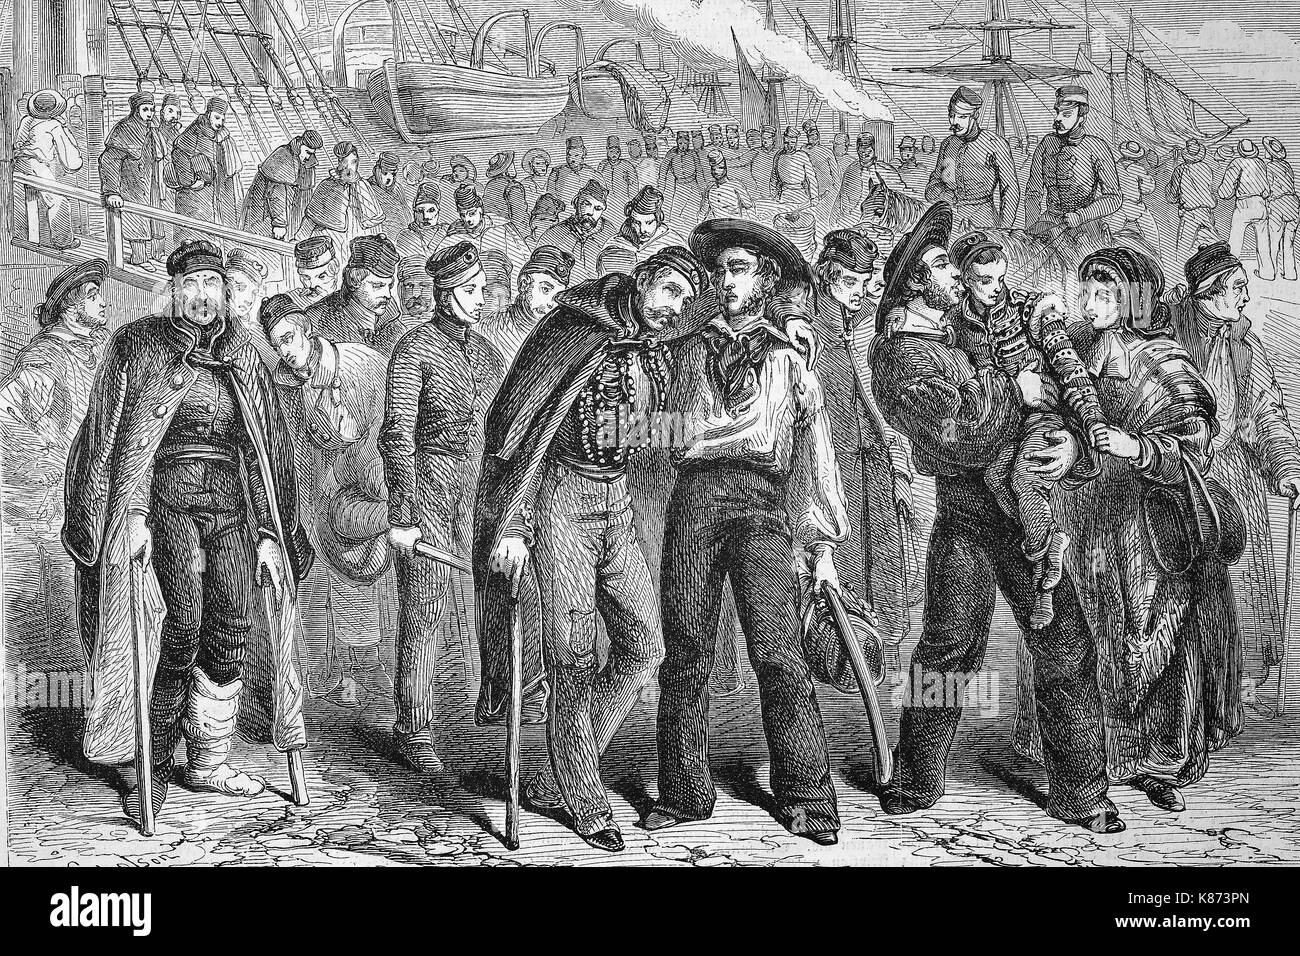 Crimean war, Return of wounded soldiers of the English army from the Crimea, Digital improved reproduction of an original woodprint from the 19th century - Stock Image